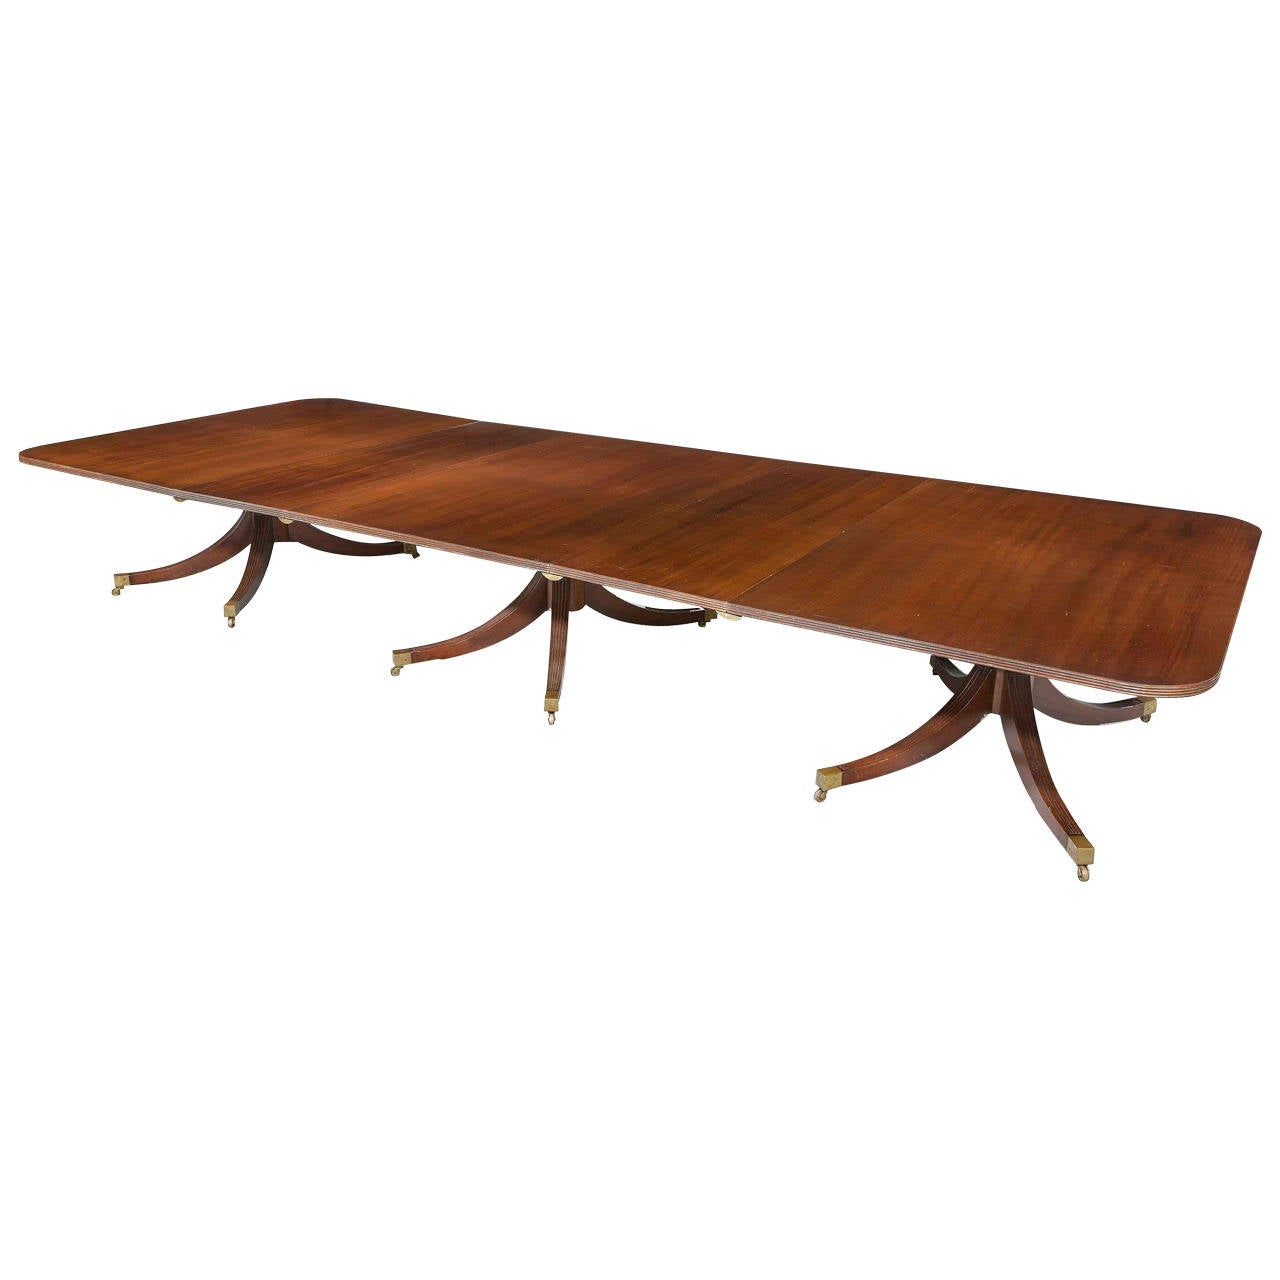 20th century three pillar mahogany dining table at 1stdibs for Pillar dining table